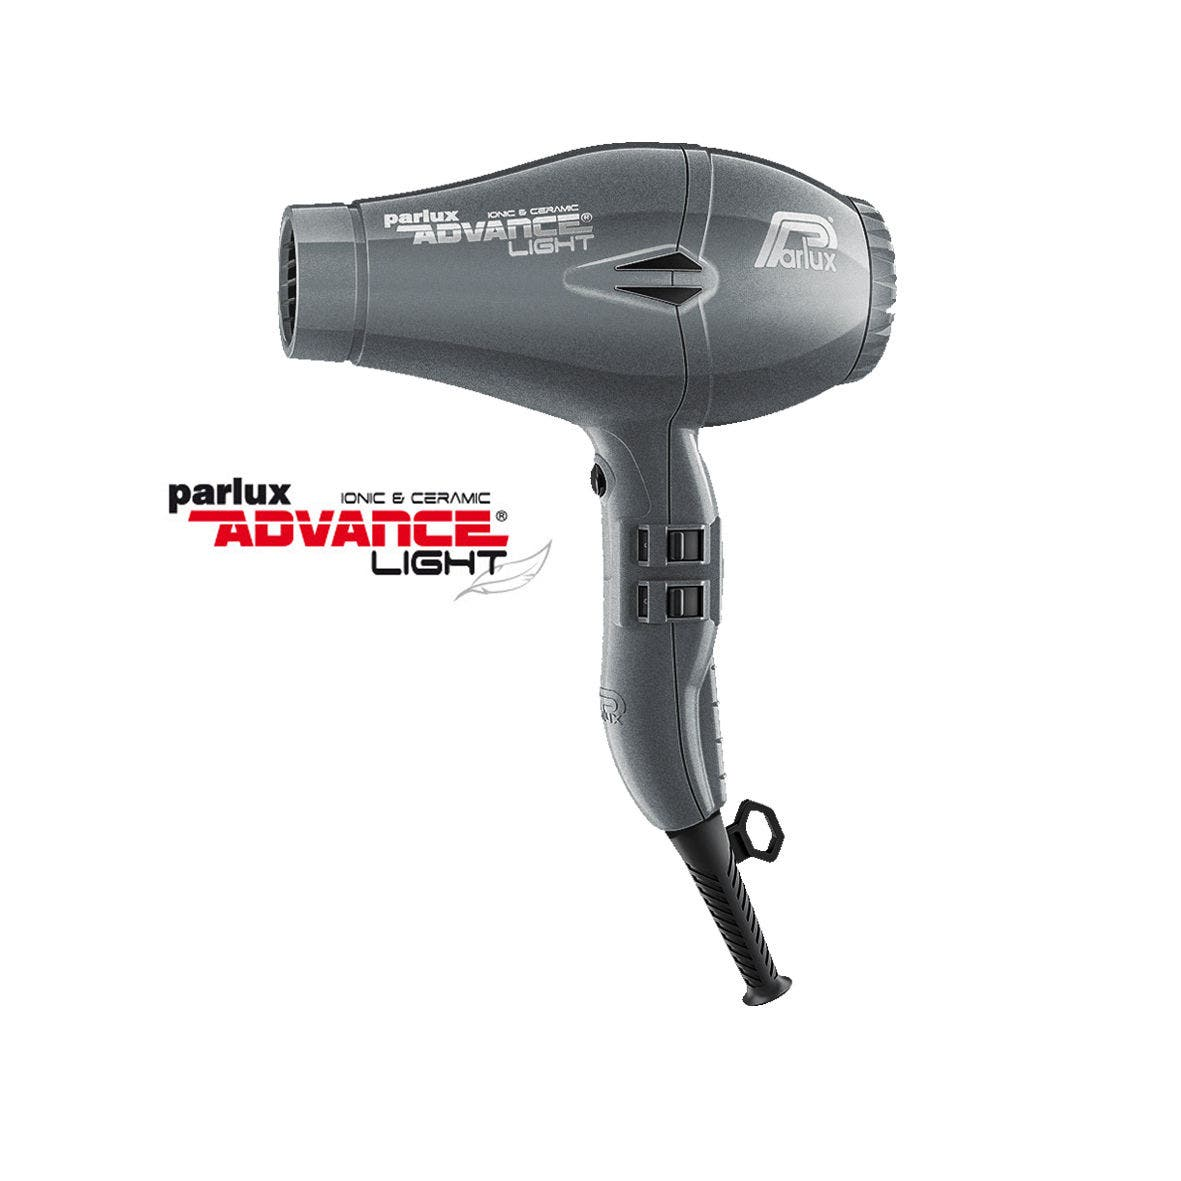 Parlux ADVANCE Light Hair Dryer Ionic & Ceramic - Graphite